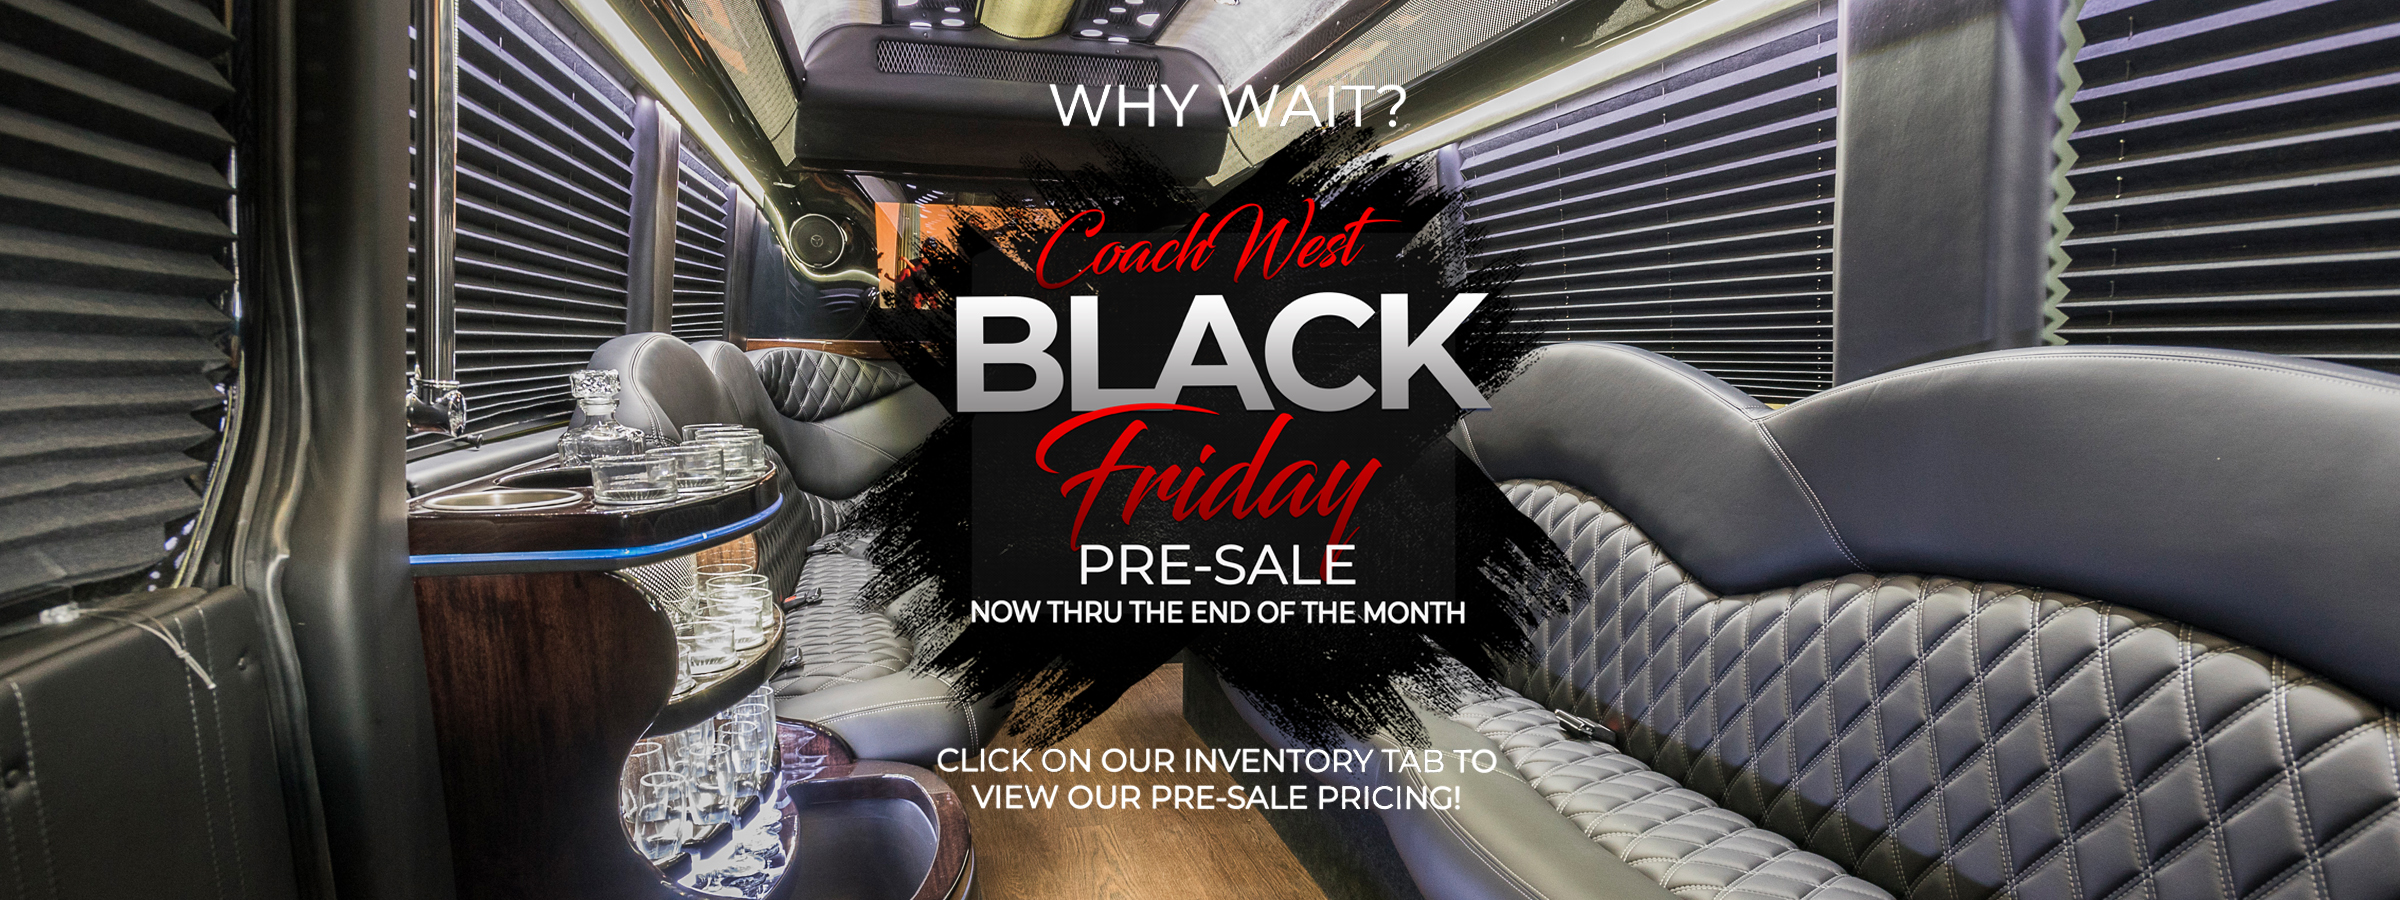 ecb-sprinter-limo-w.black-friday-ad